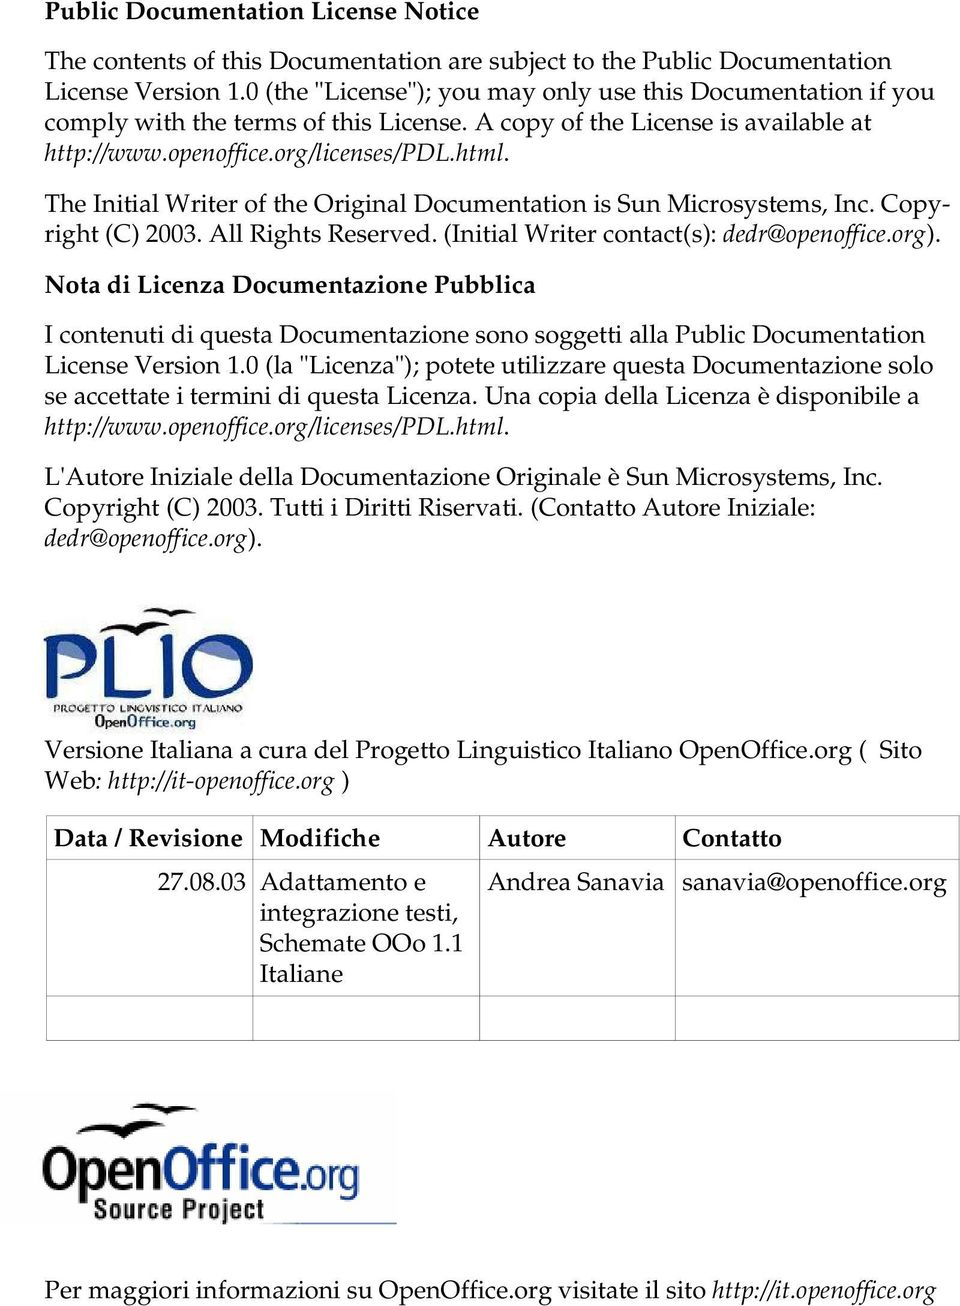 The Initial Writer of the Original Documentation is Sun Microsystems, Inc. Copyright (C) 2003. All Rights Reserved. (Initial Writer contact(s): dedr@openoffice.org).